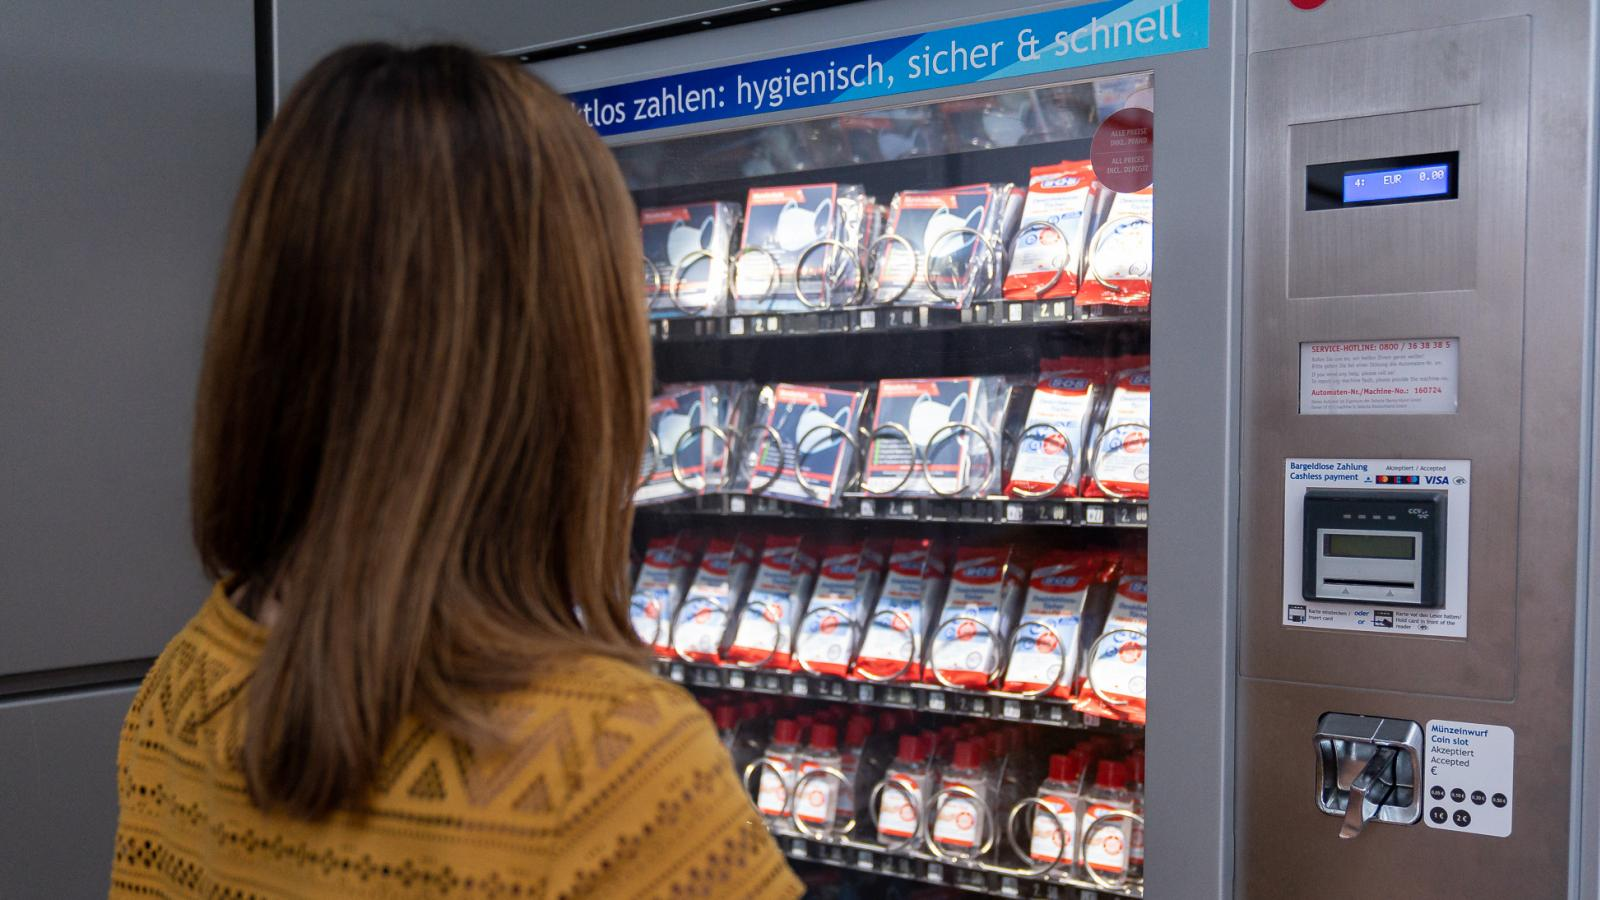 Hygiene vending machine at Hamburg Airport